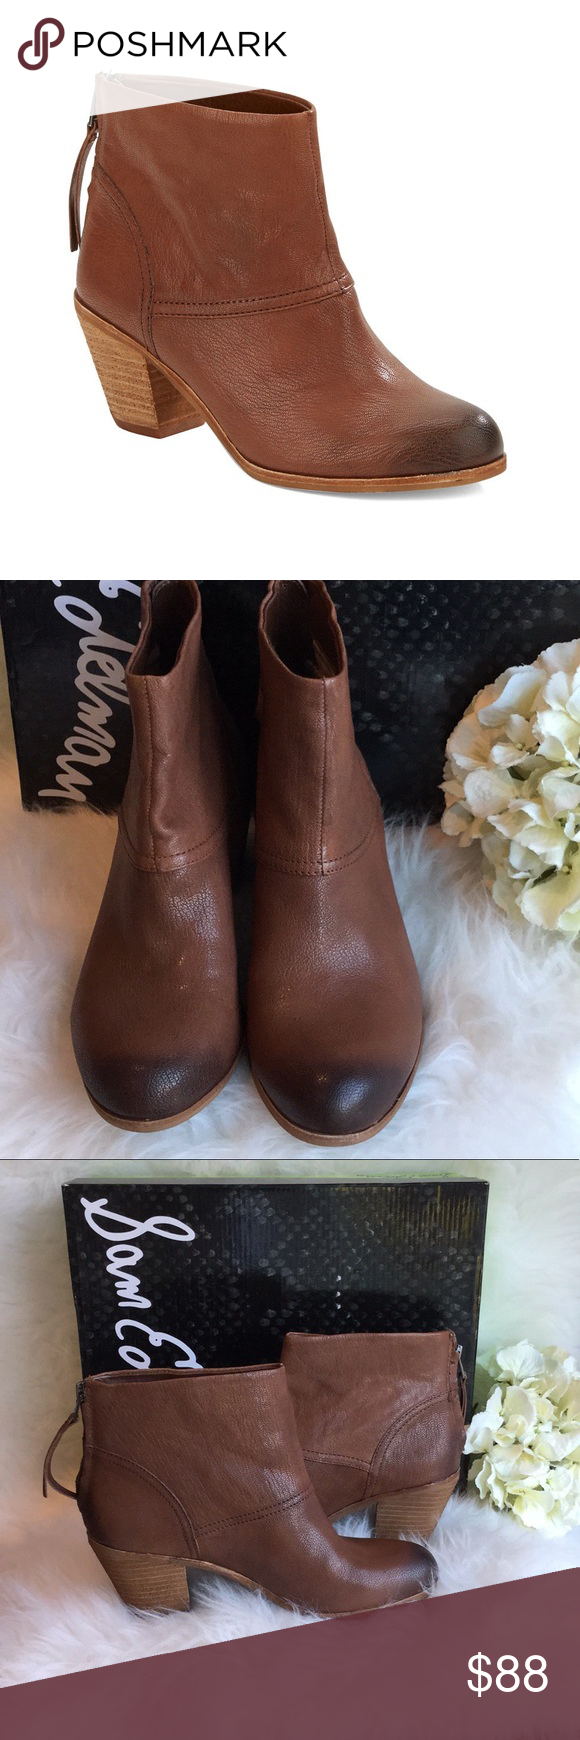 "62e8bc8201c279 🆕Sam Edelman Larkin Boots NWT Beautiful round toe leather boots by Sam  Edelman in brown cocoa leather. 3"" stacked wooden heel. Back zipper closure."